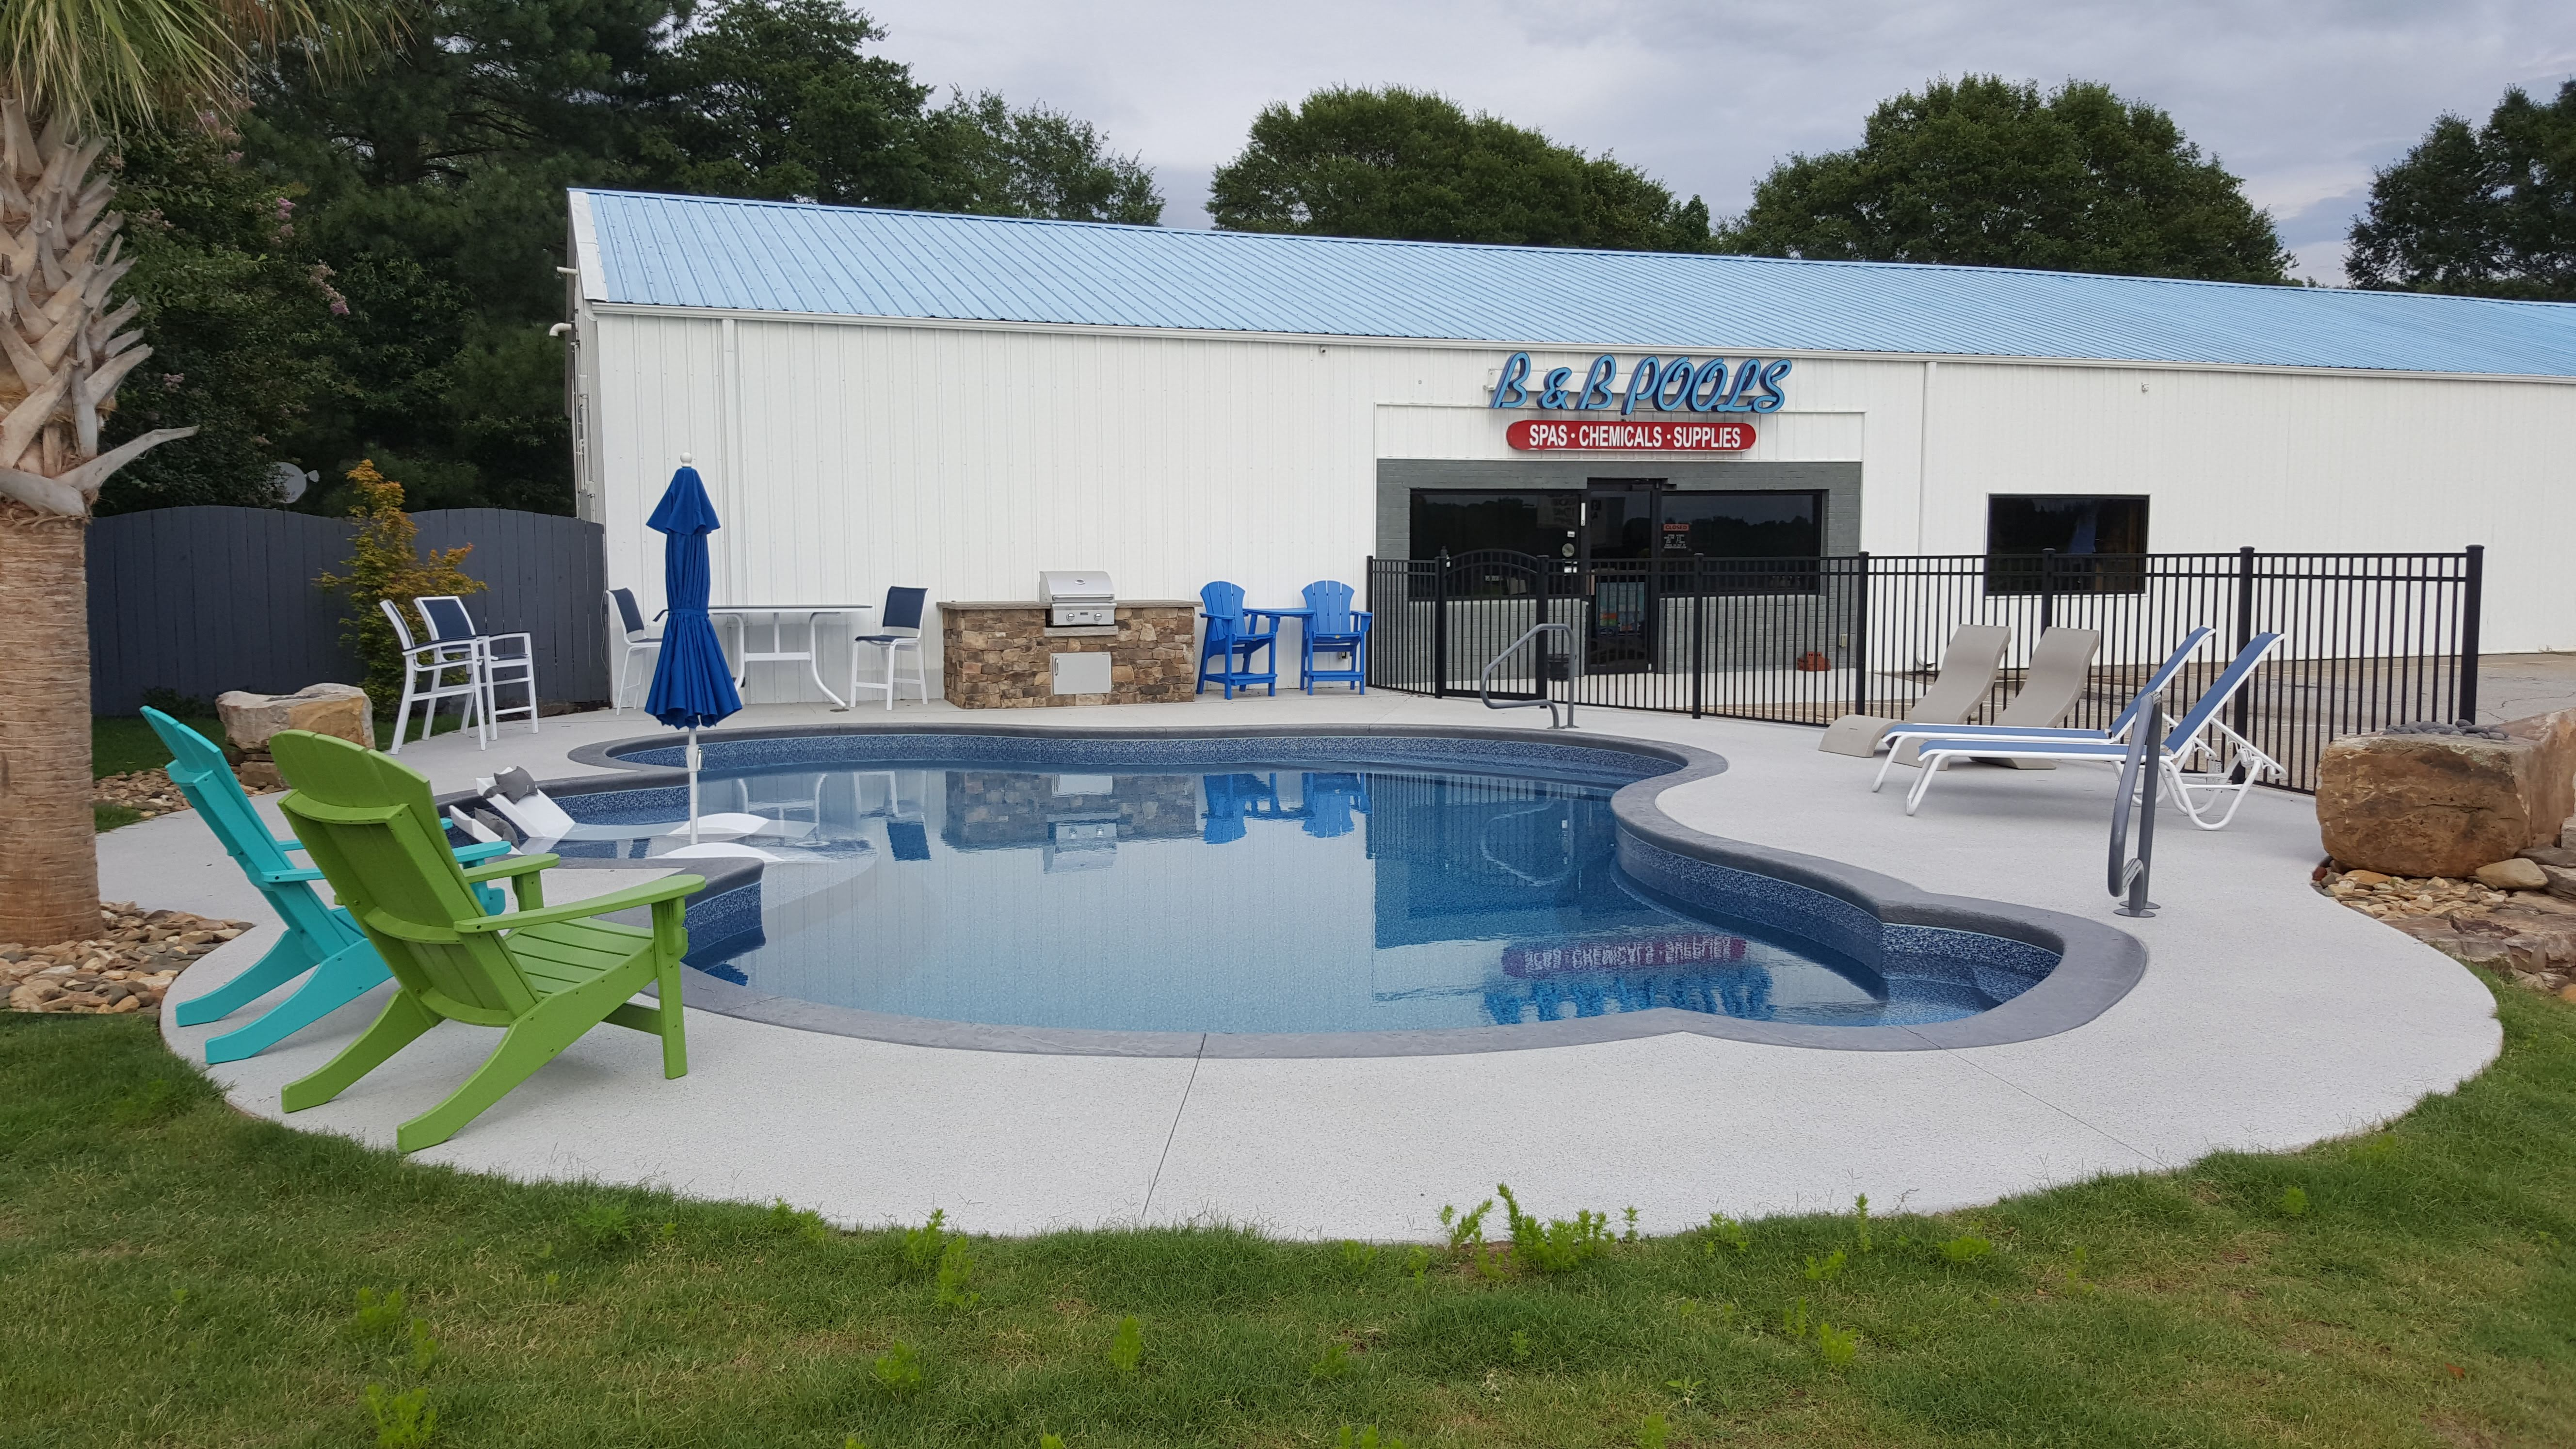 Since 1982 jerry bowers started building pools in the upstate of south carolina for the states largest pool builder building residential in ground vinyl